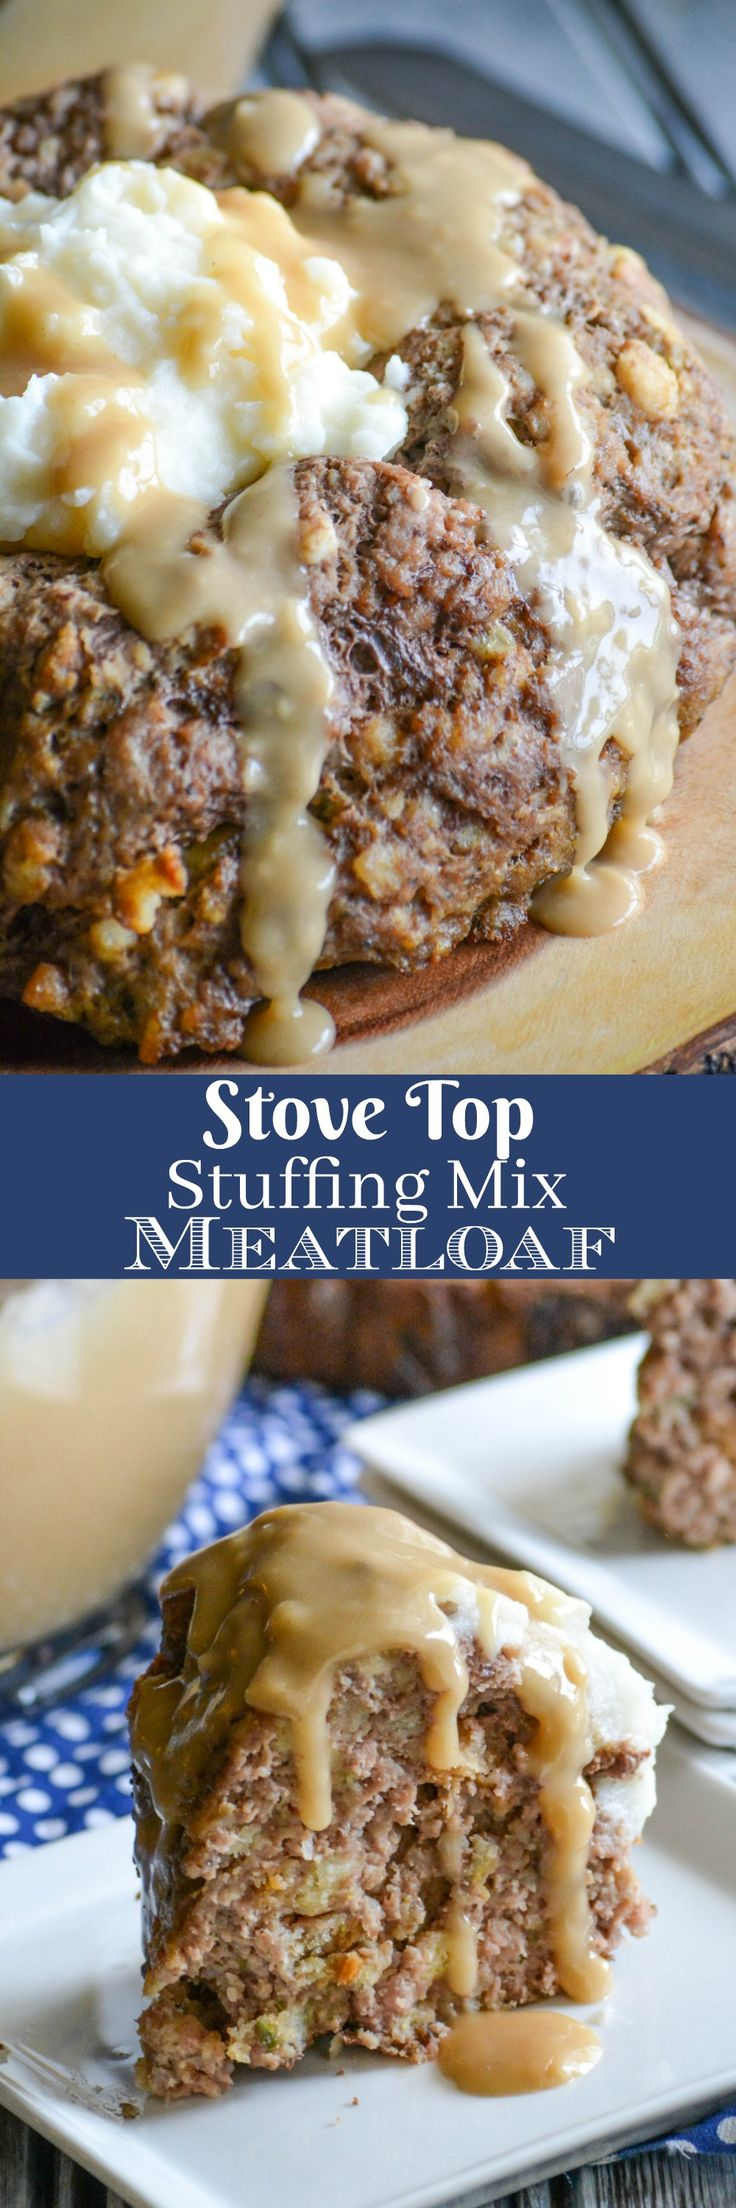 An easy meatloaf with a simple ingredient list, this Stove Top Stuffing Mix Meatloaf is the perfect dinner for busy nights. Served with creamy mashed potatoes and rich gravy, your family will never guess your secret to such a cozy meal. via @4sonrus